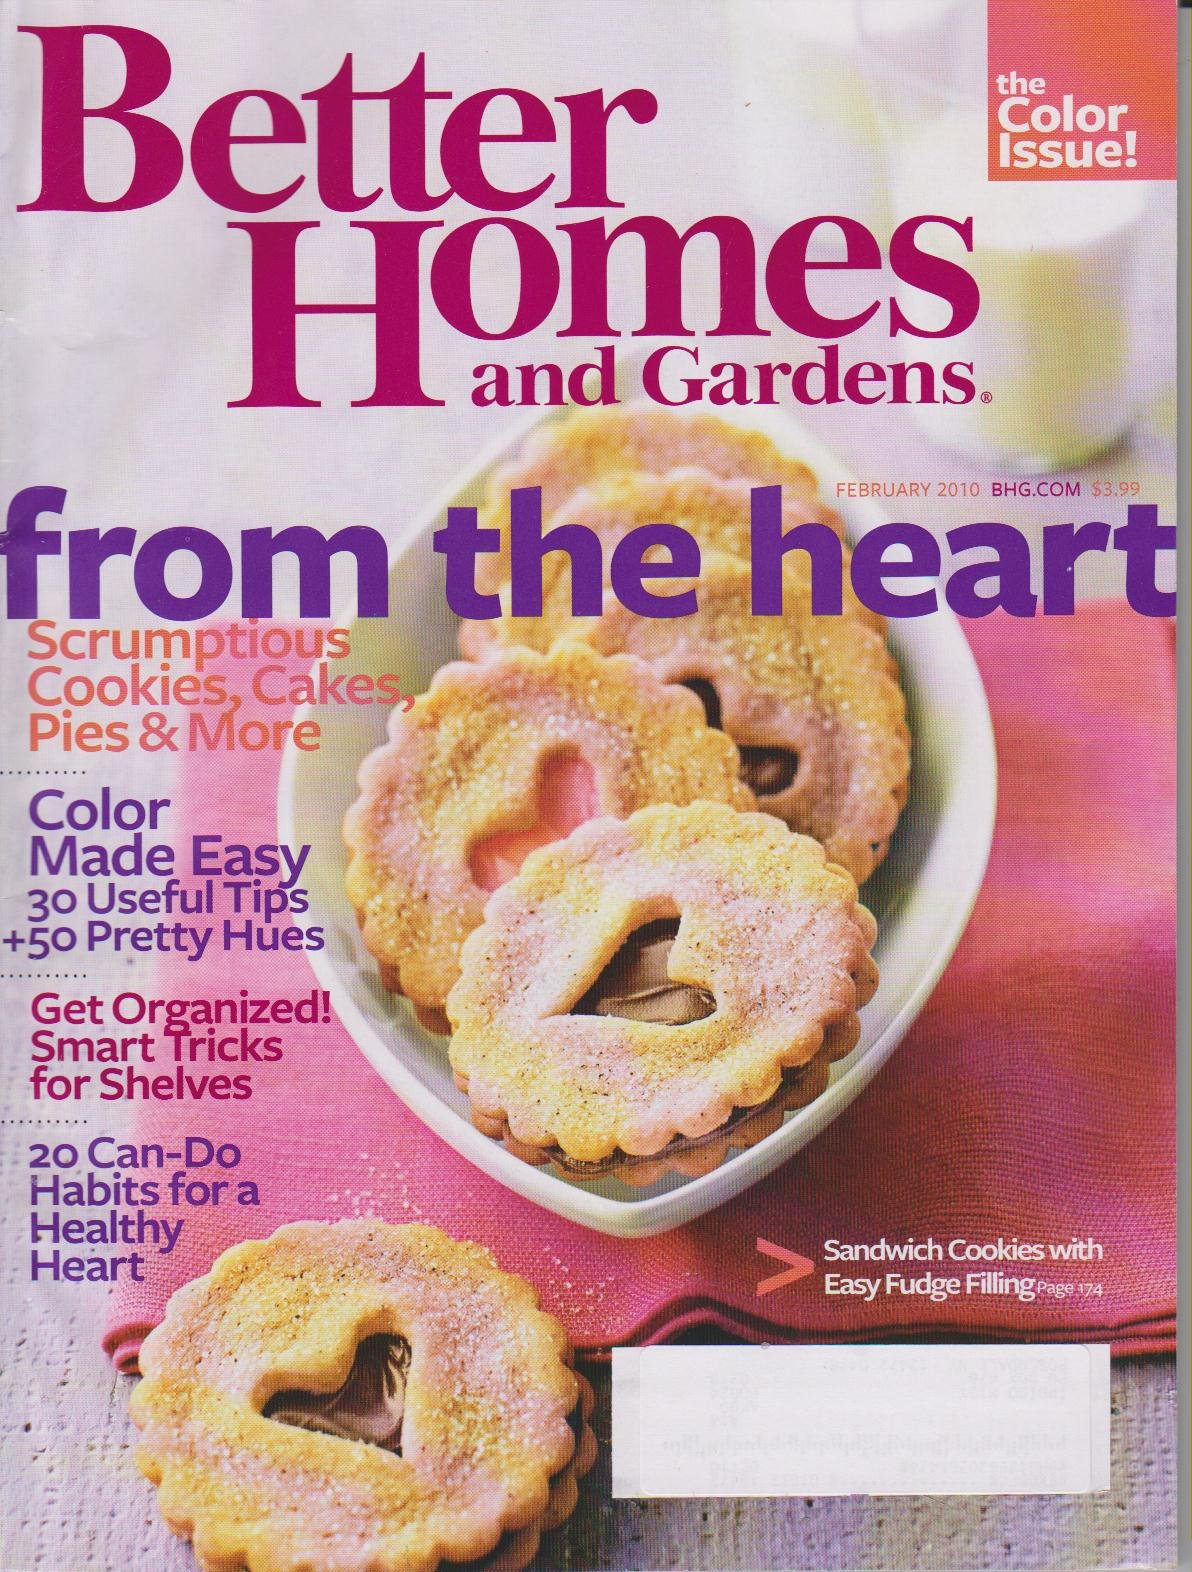 Download Better Homes and Gardens February 2010 From the Heart (Scrumptious Cookies, Cakes, Pies, and more; 20 Can Do Habits for a Healthy Heart, Color Made Easy; Get Organized, The Color Issue) ebook